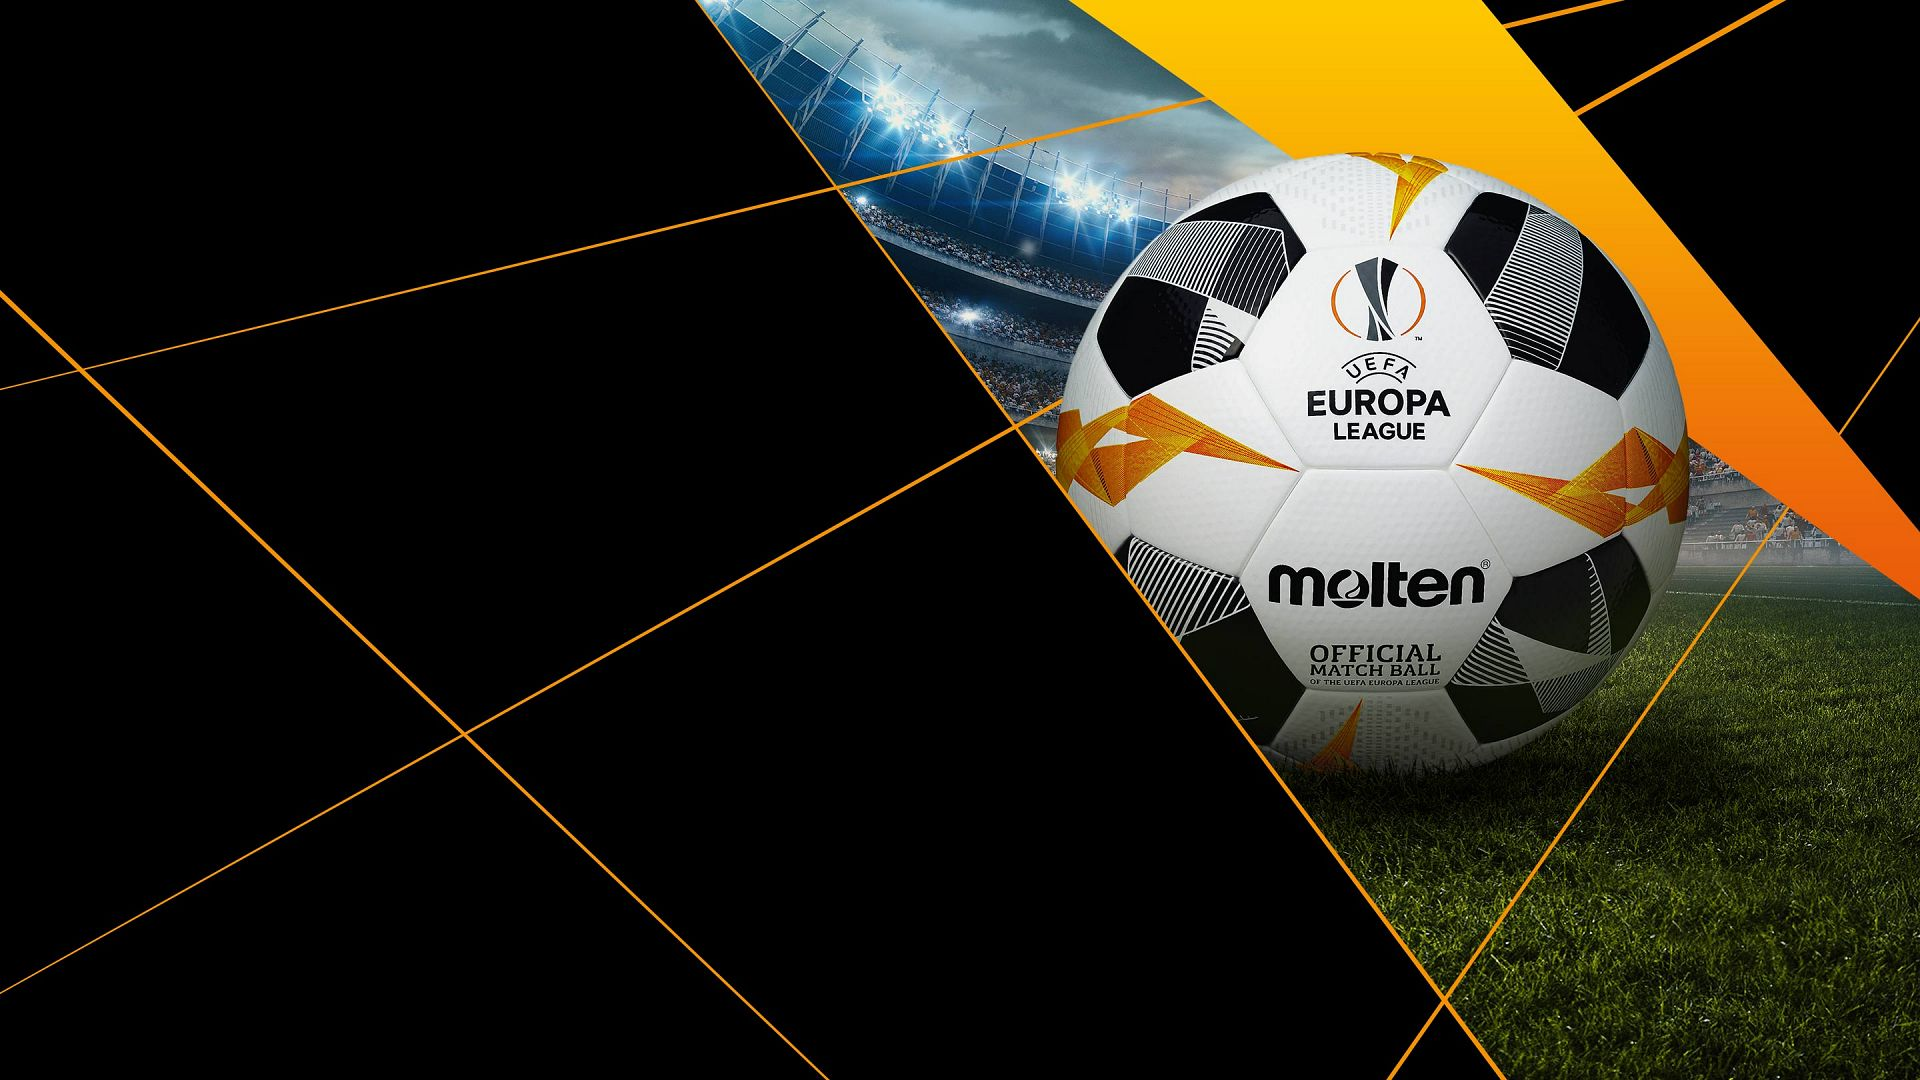 watch uefa europa league matches live on cbs all access watch uefa europa league matches live